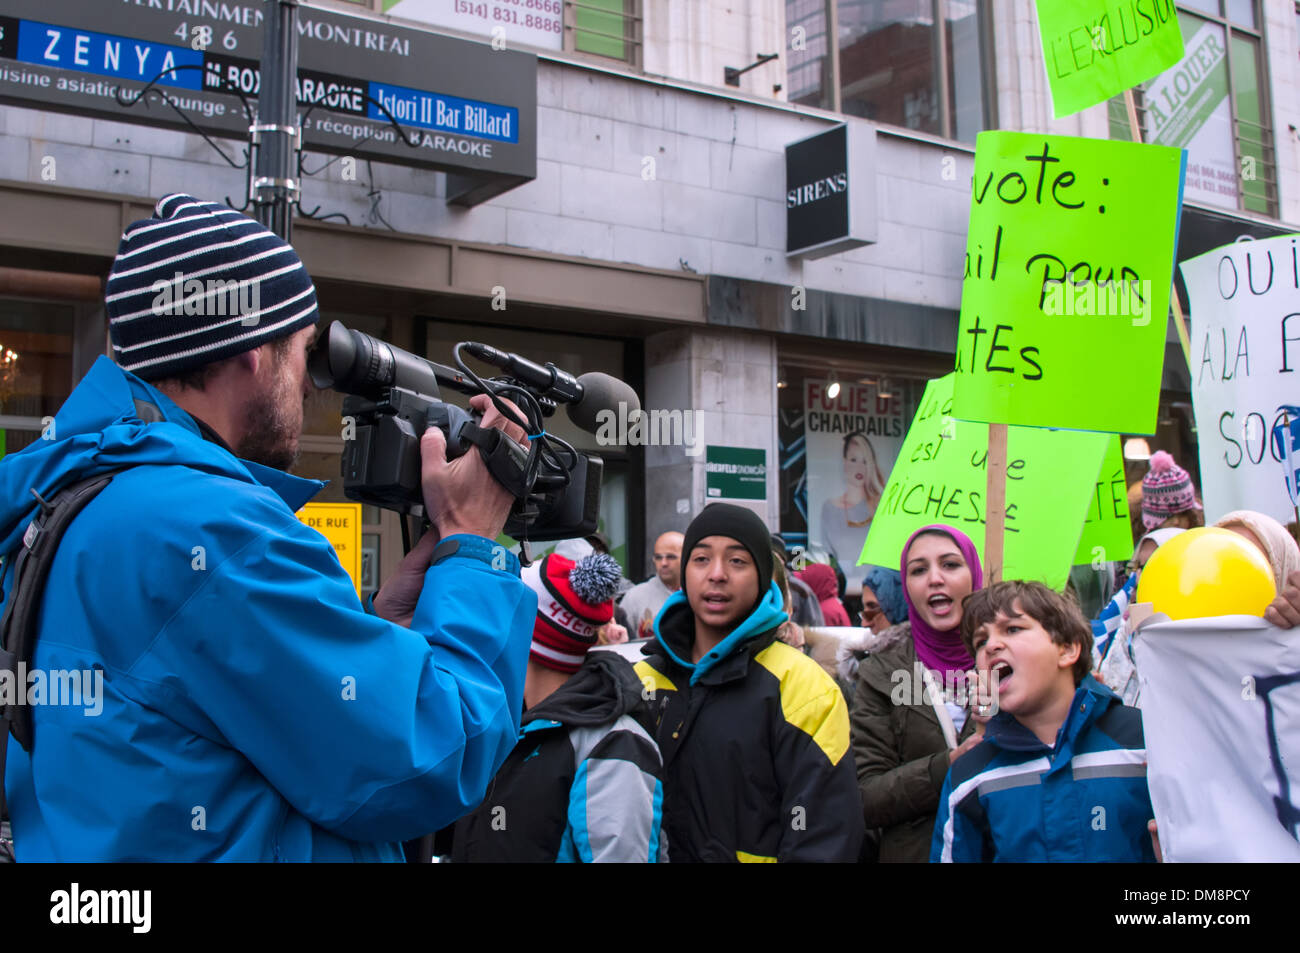 Journalist during demonstration Montreal - Stock Image